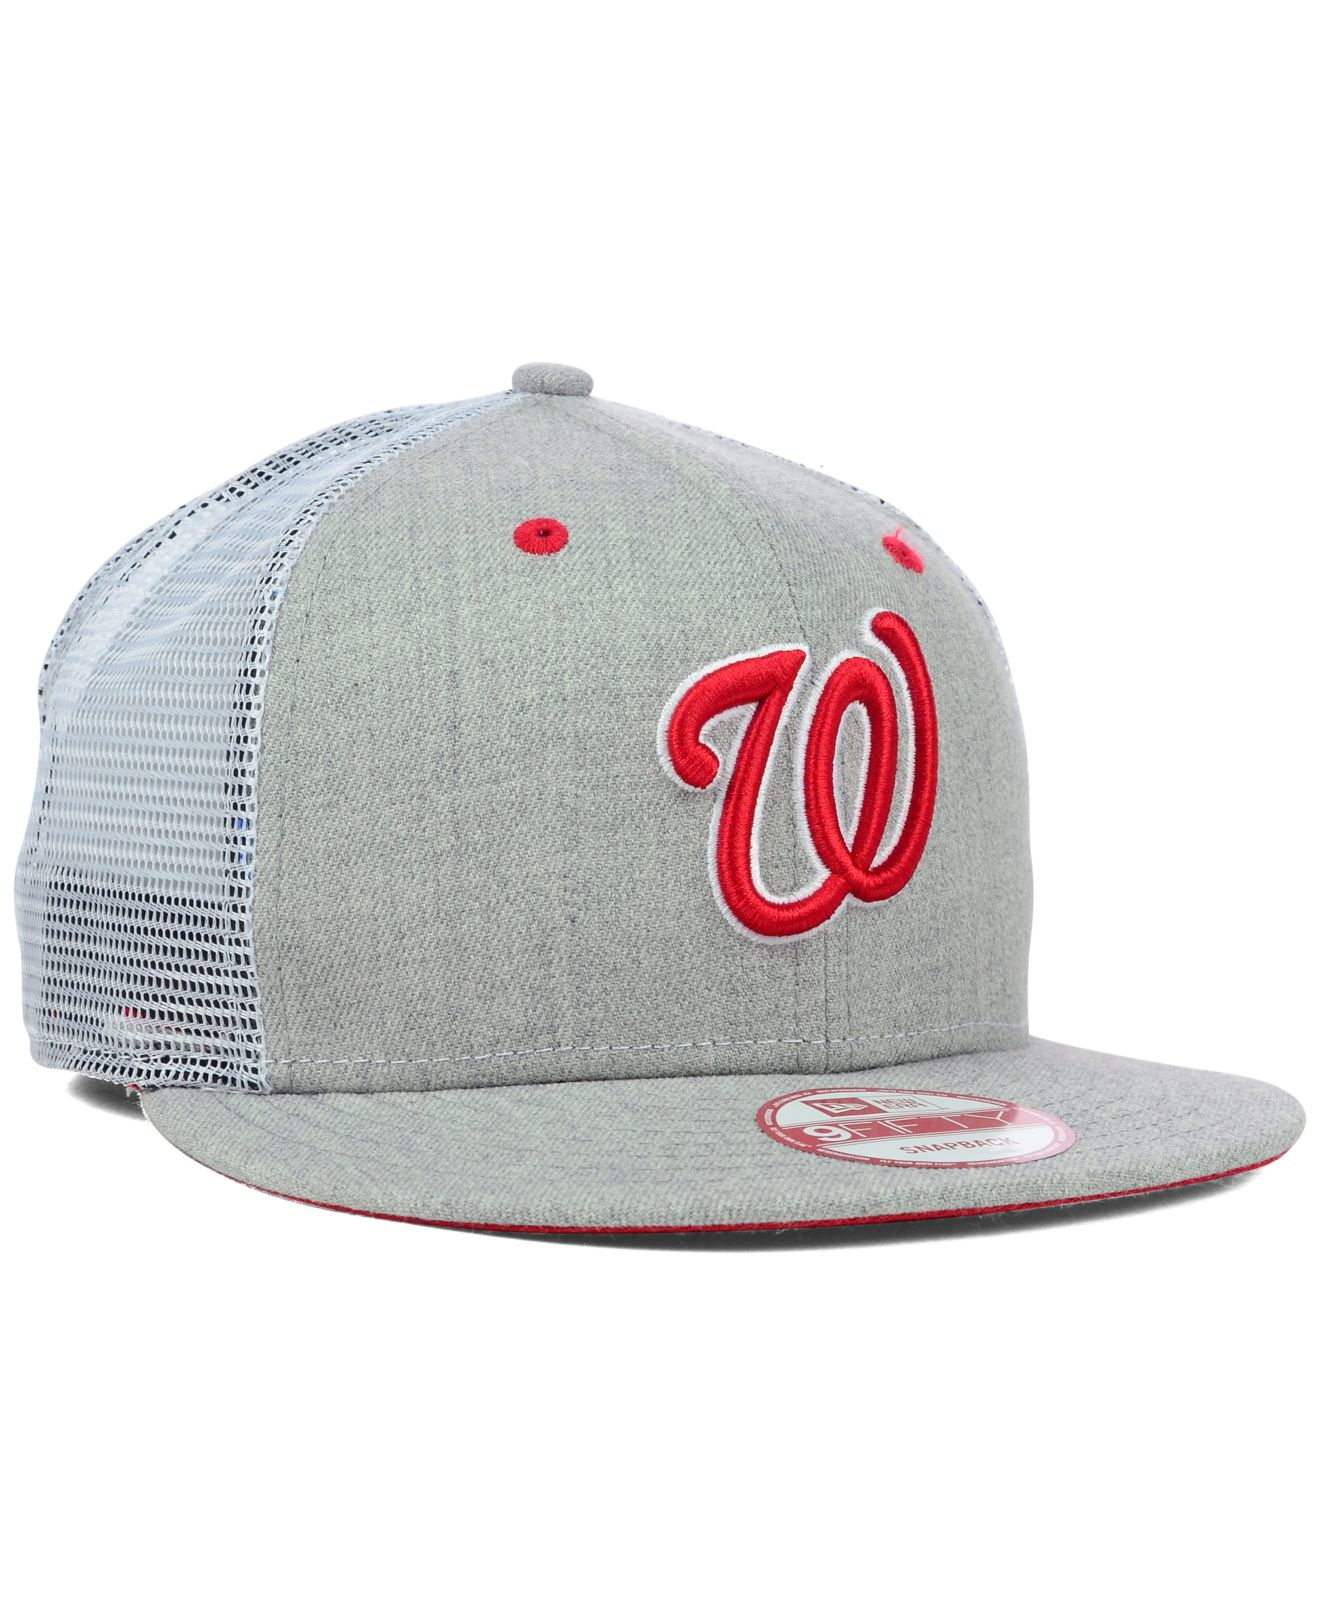 ace0910ec coupon code for washington nationals trucker hat 66f1d 126bb